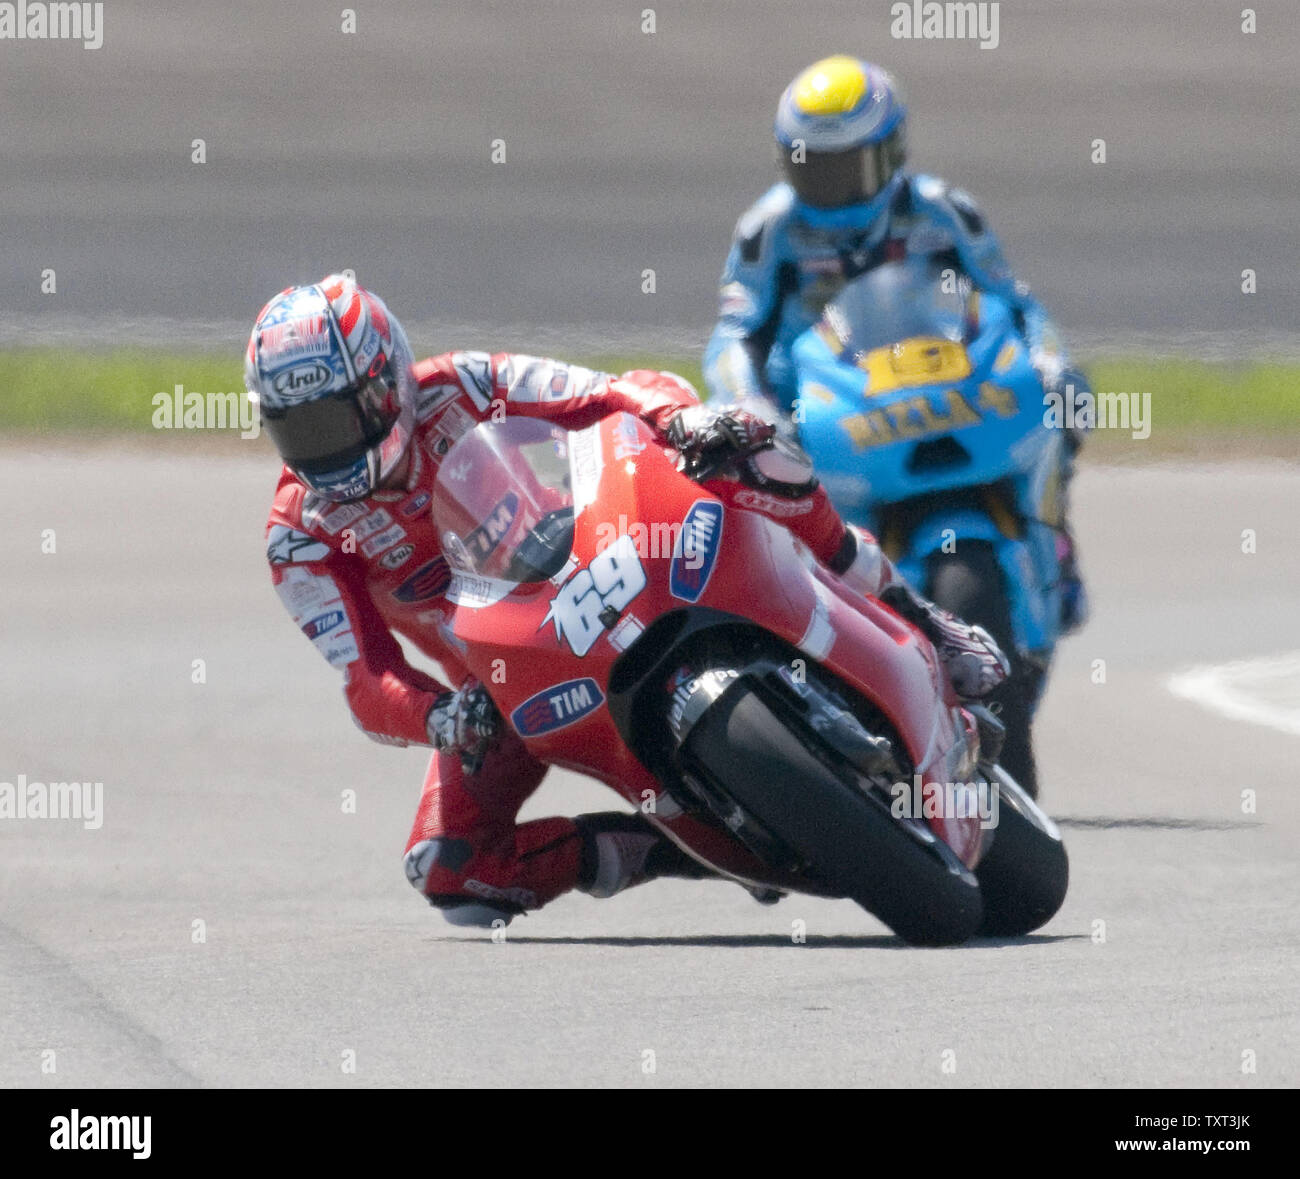 nicky-hayden-on-a-ducati-ahead-of-alvaro